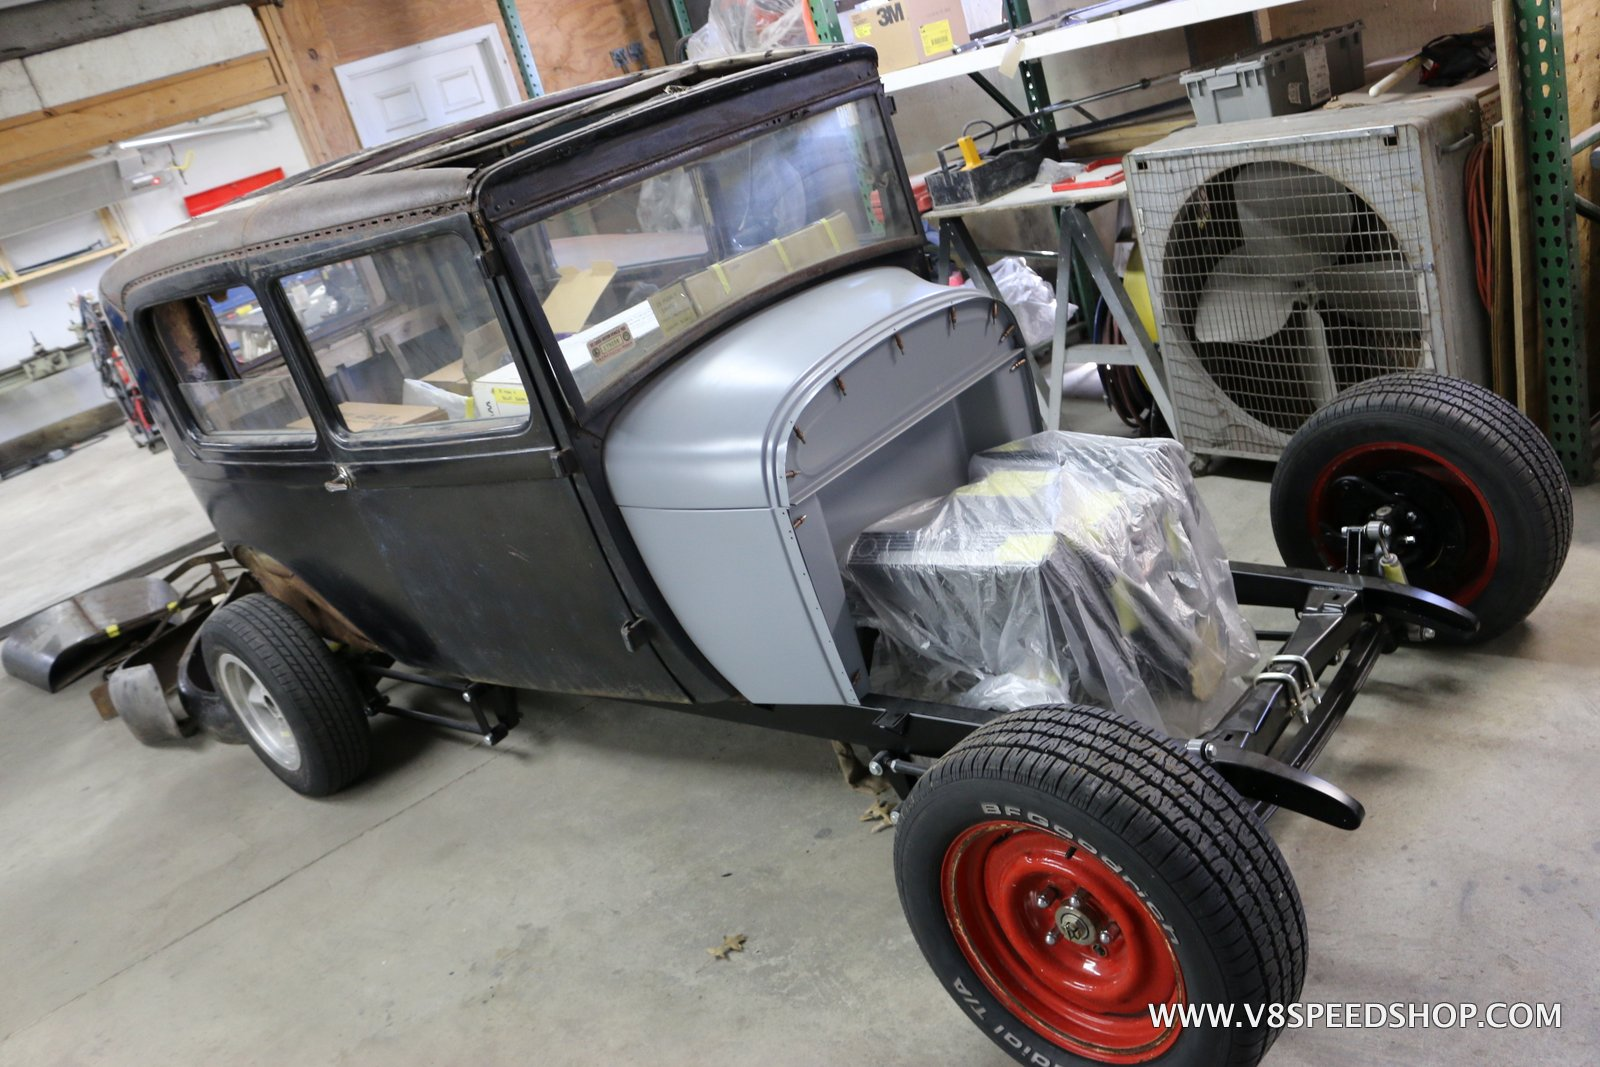 1928 Ford Sedan Chassis Fabrication at V8 Speed & Resto Shop